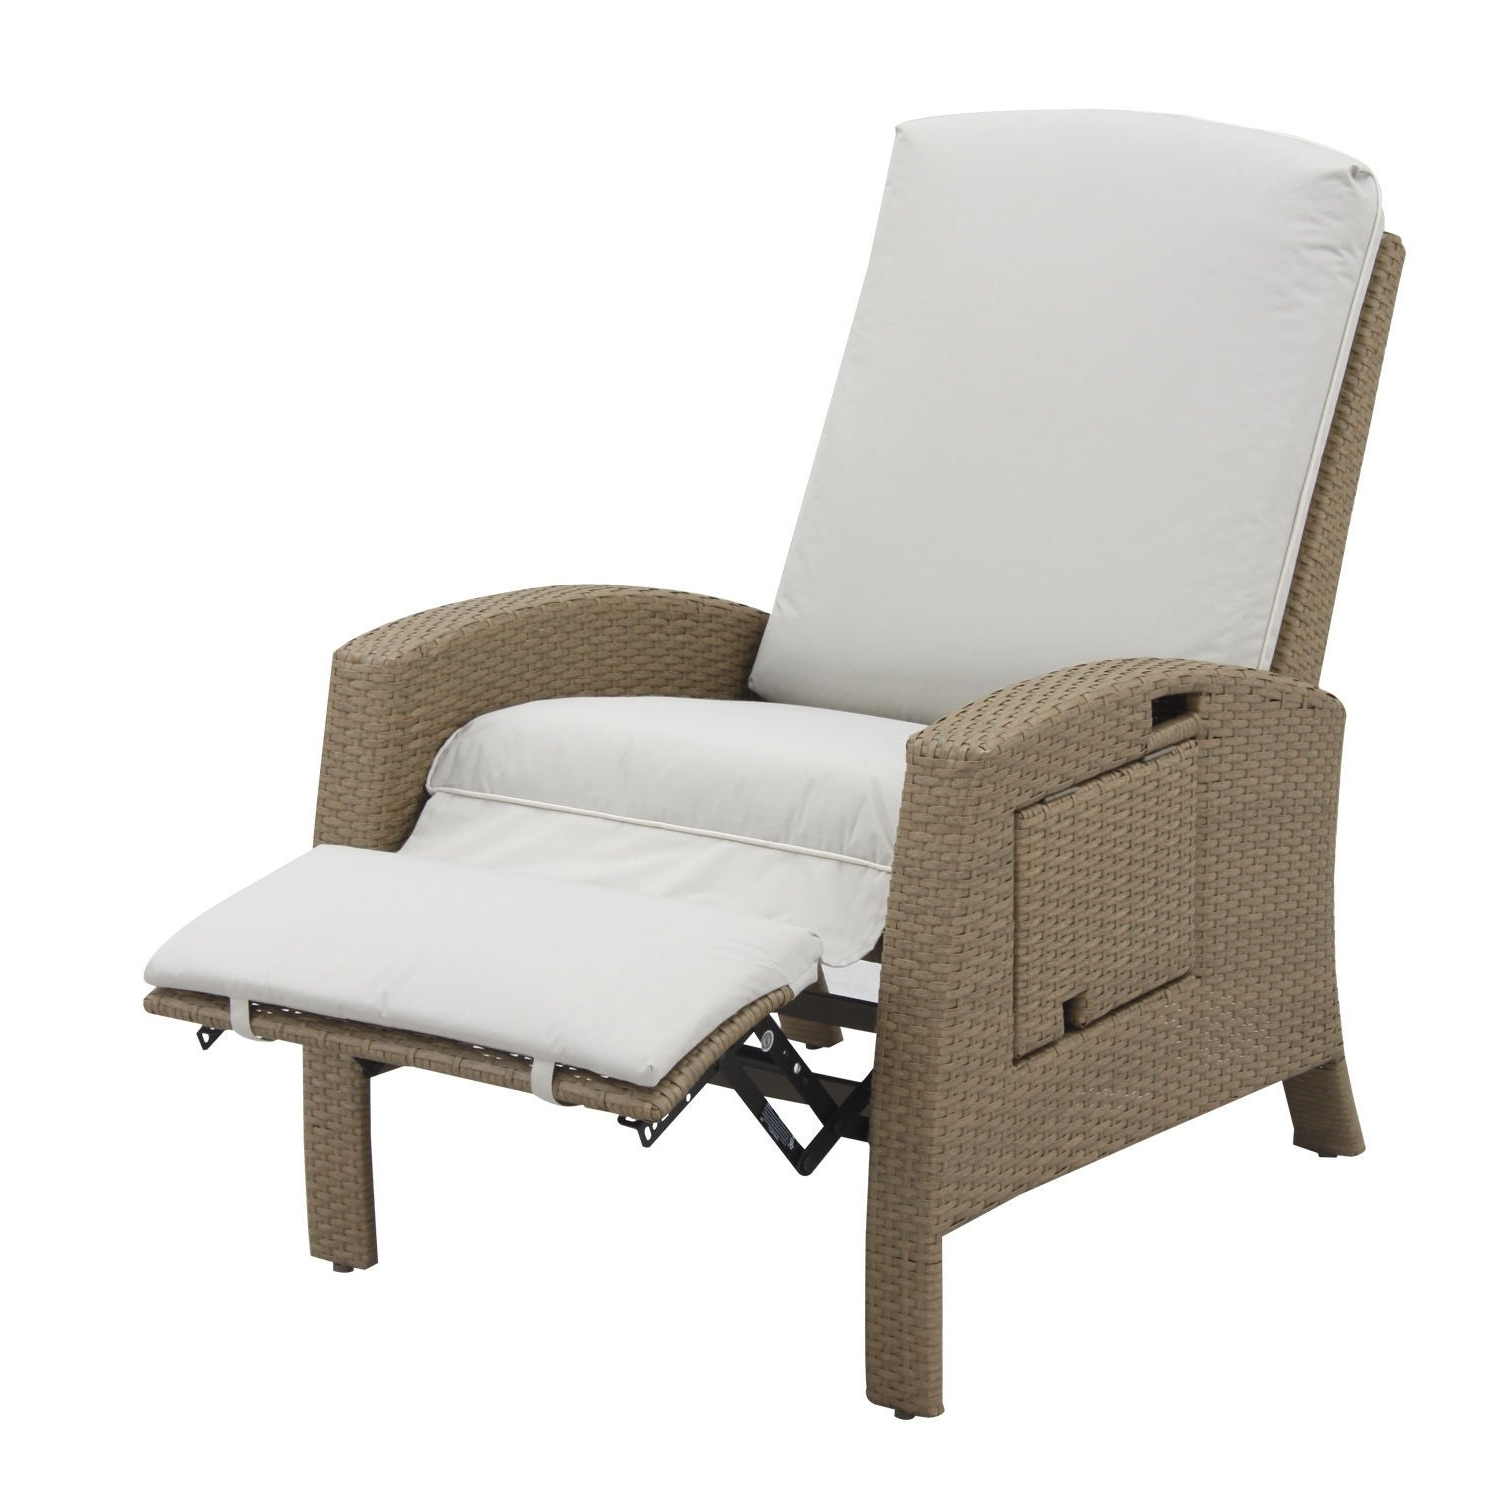 Fashionable Outdoor Adjustable Rattan Wicker Recliner Chairs With Cushion Pertaining To Outsunny Outdoor Rattan Wicker Adjustable Recliner Lounge Chair (View 8 of 25)